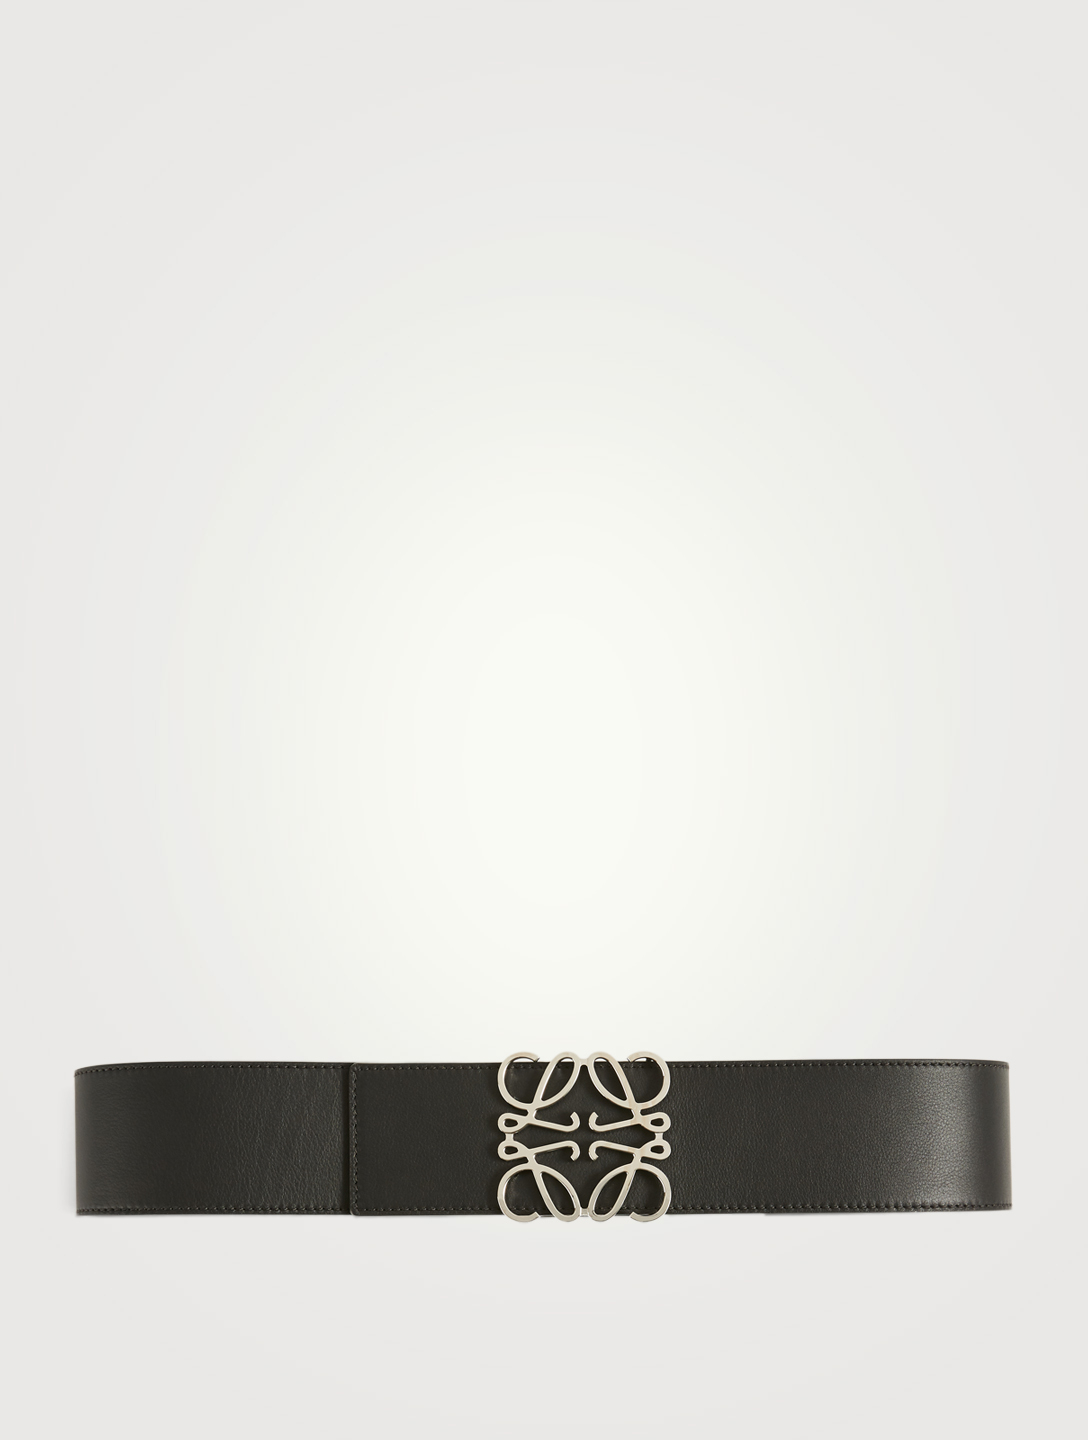 LOEWE Anagram Wide Leather Belt Women's Black